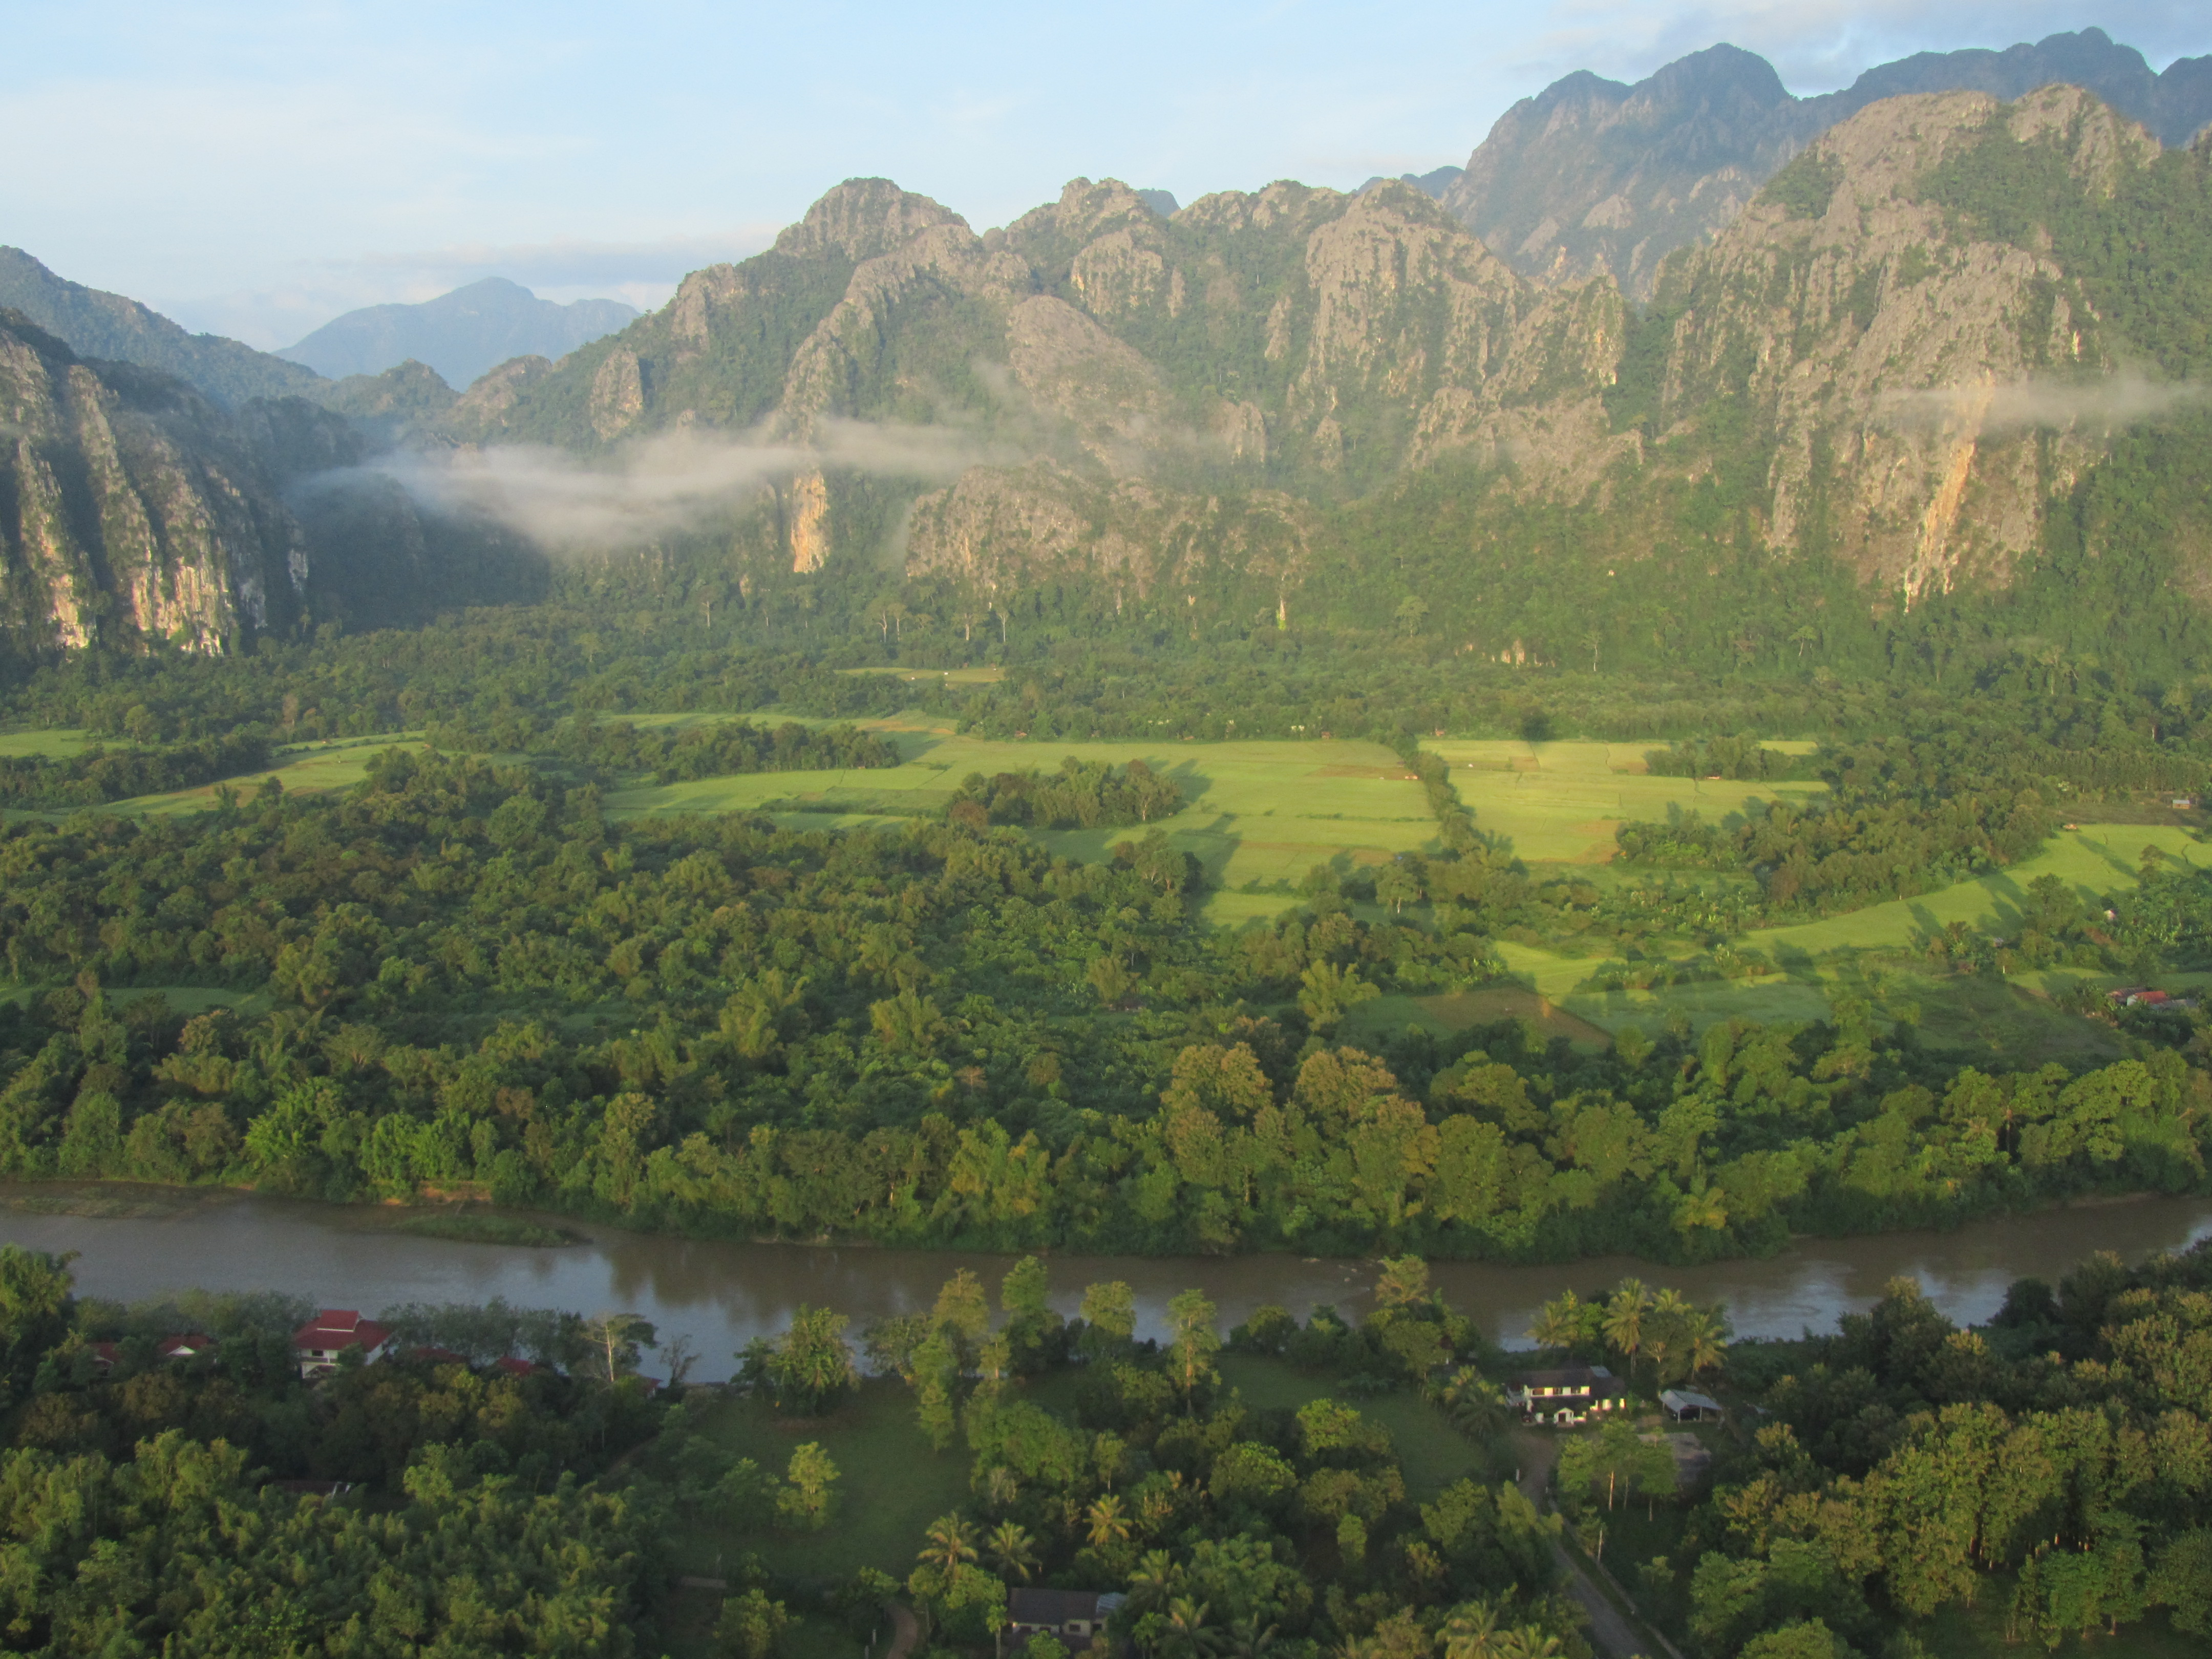 View from Hot Air Balloon of Karst Mountains in Vang Vieng